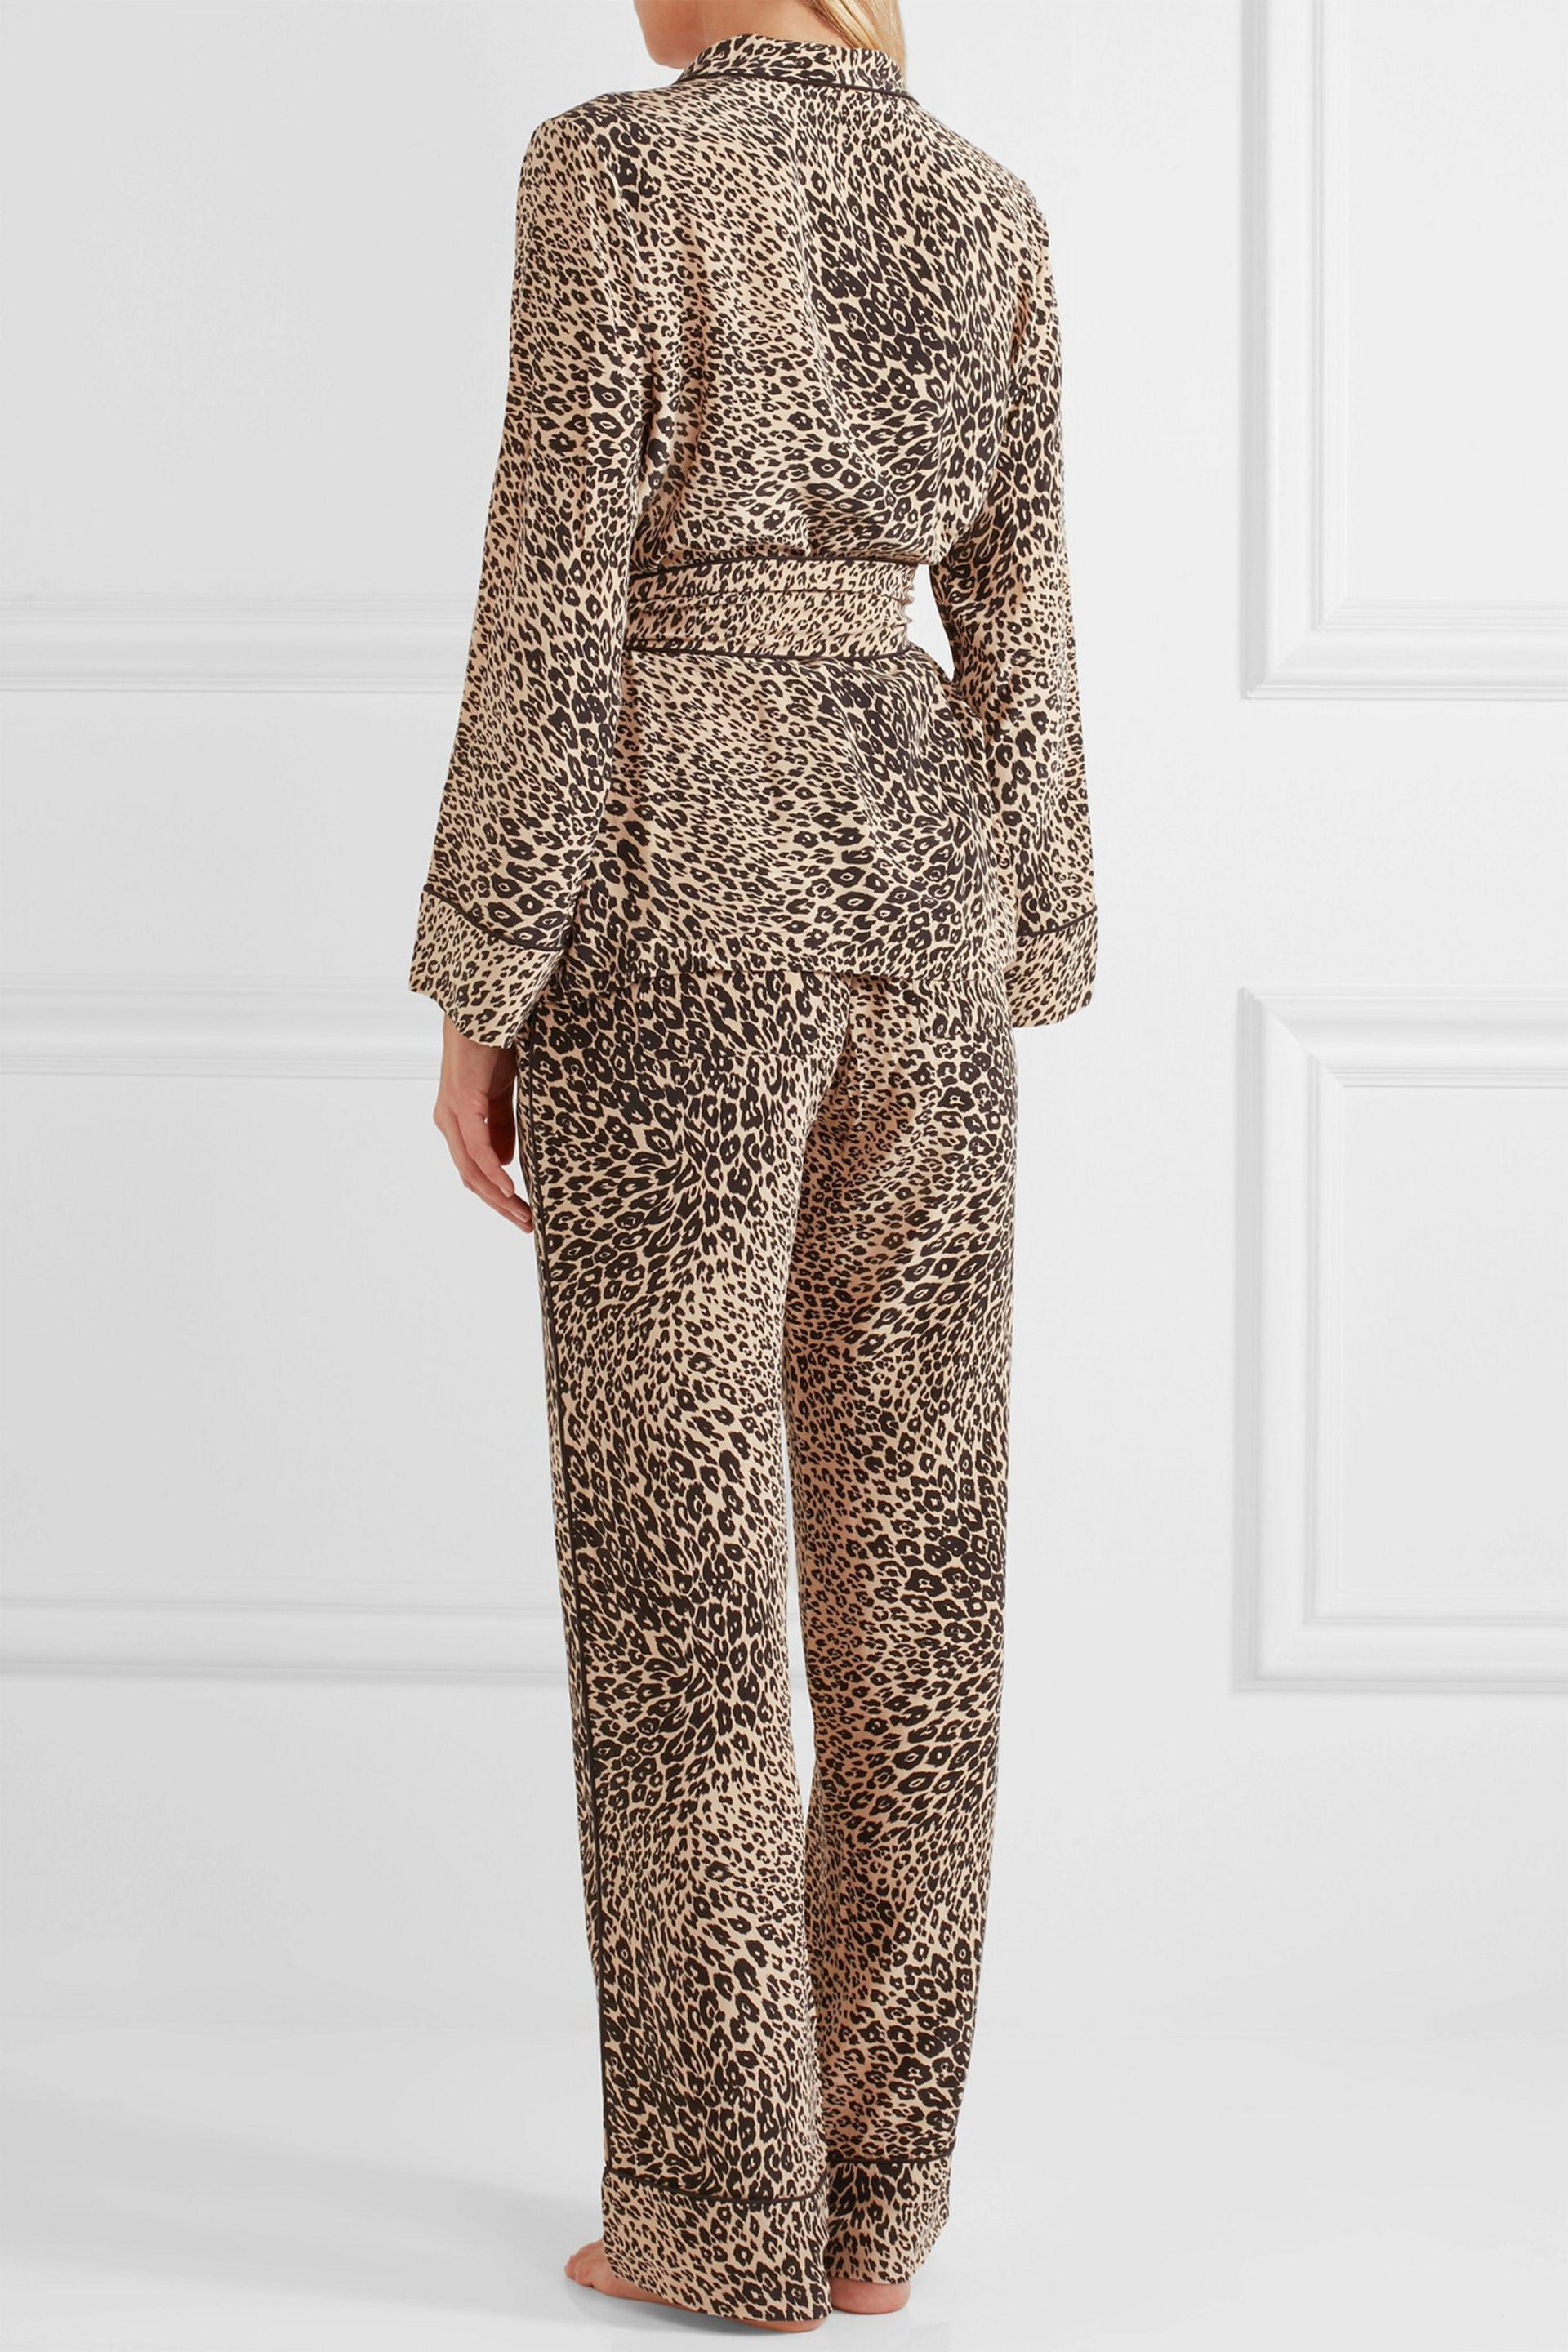 9cead73c9e Lyst - Equipment Odette Leopard-print Washed-silk Pajama Set in Natural